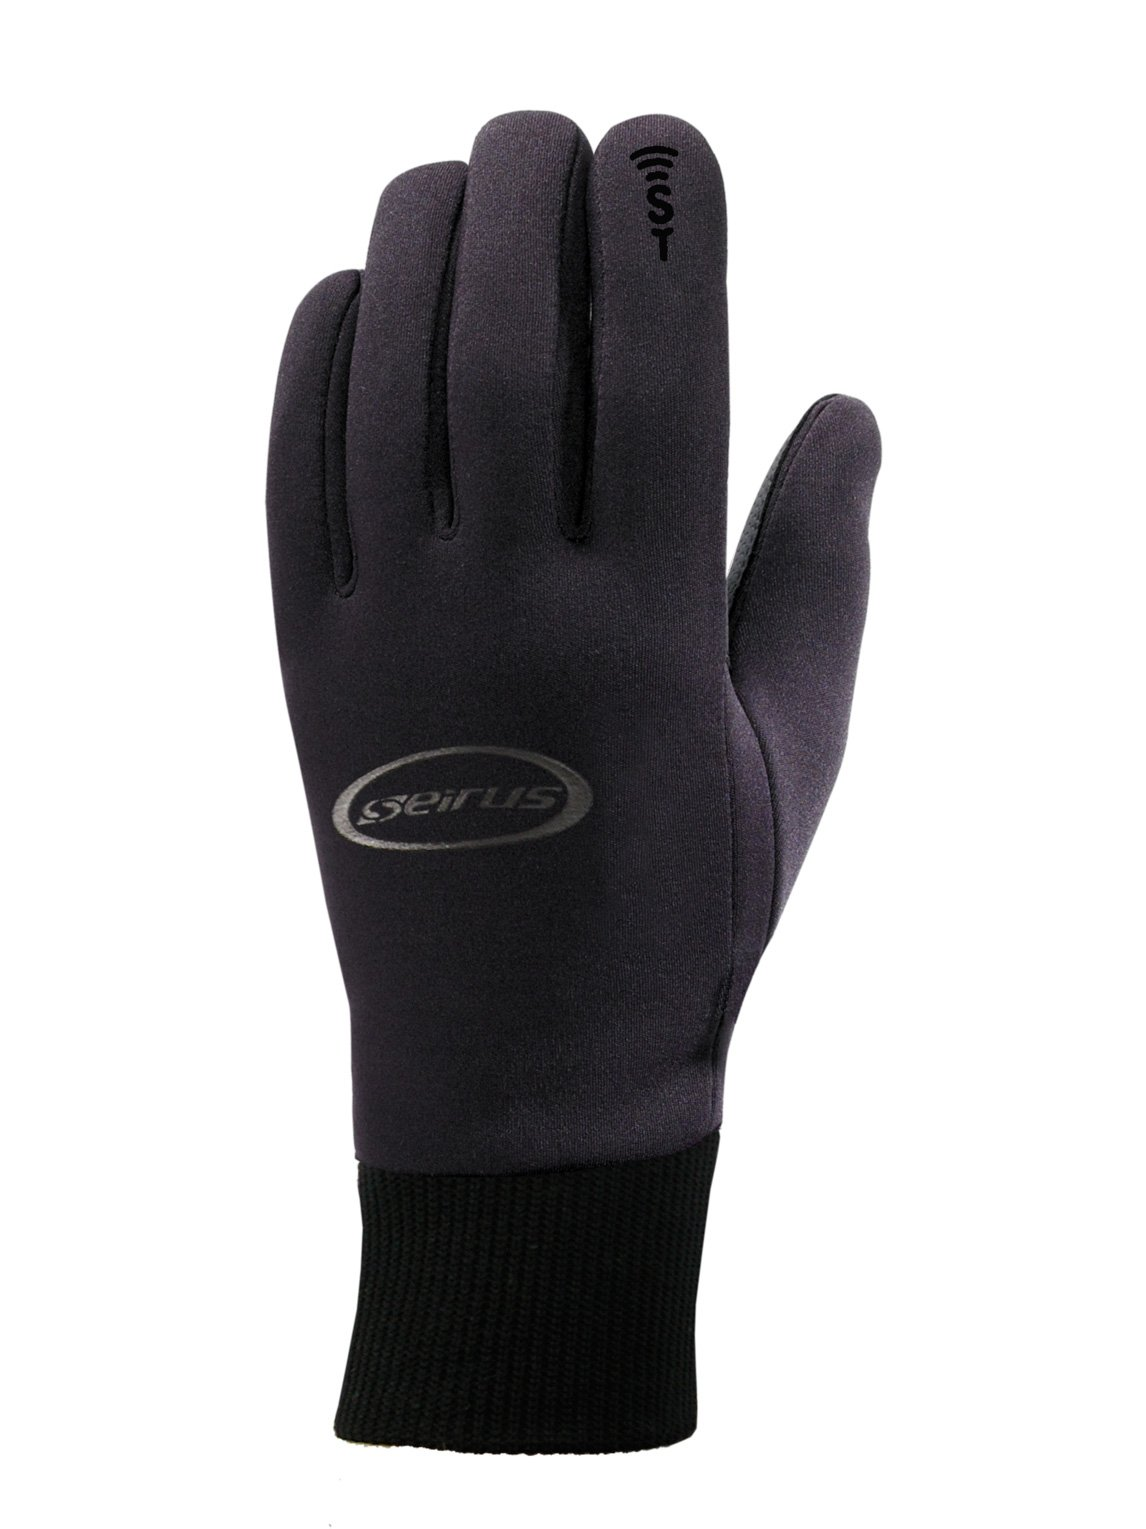 Seirus Innovation Soundtouch All Weather Glove